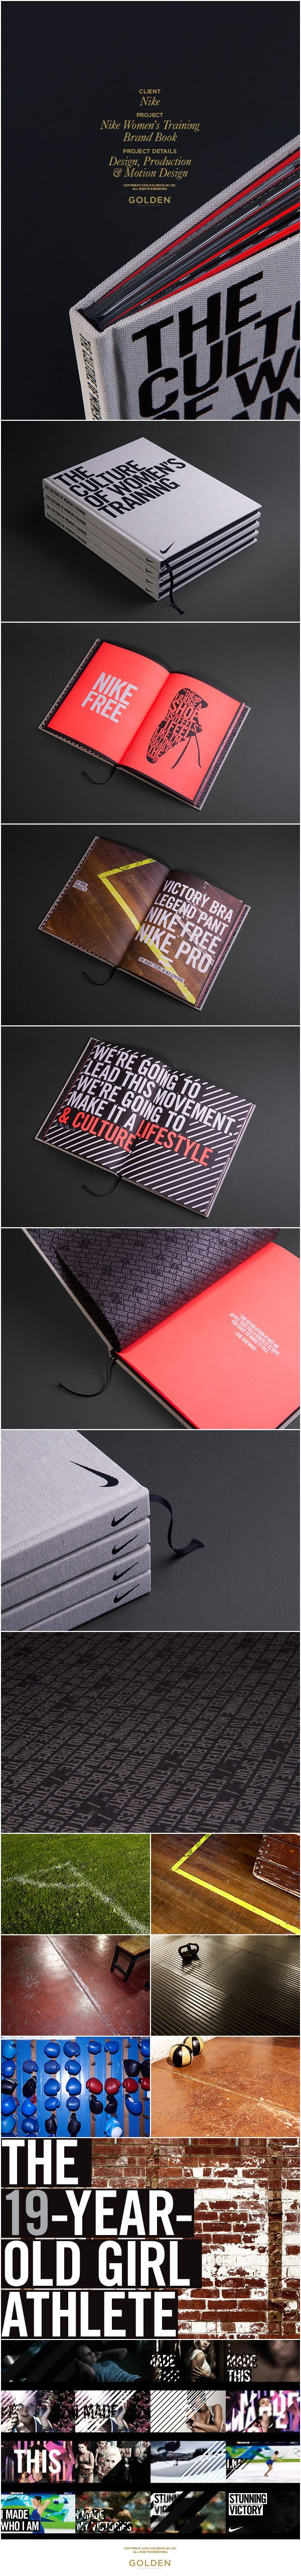 Nike Women's Training Brand Book on Editorial Design Served